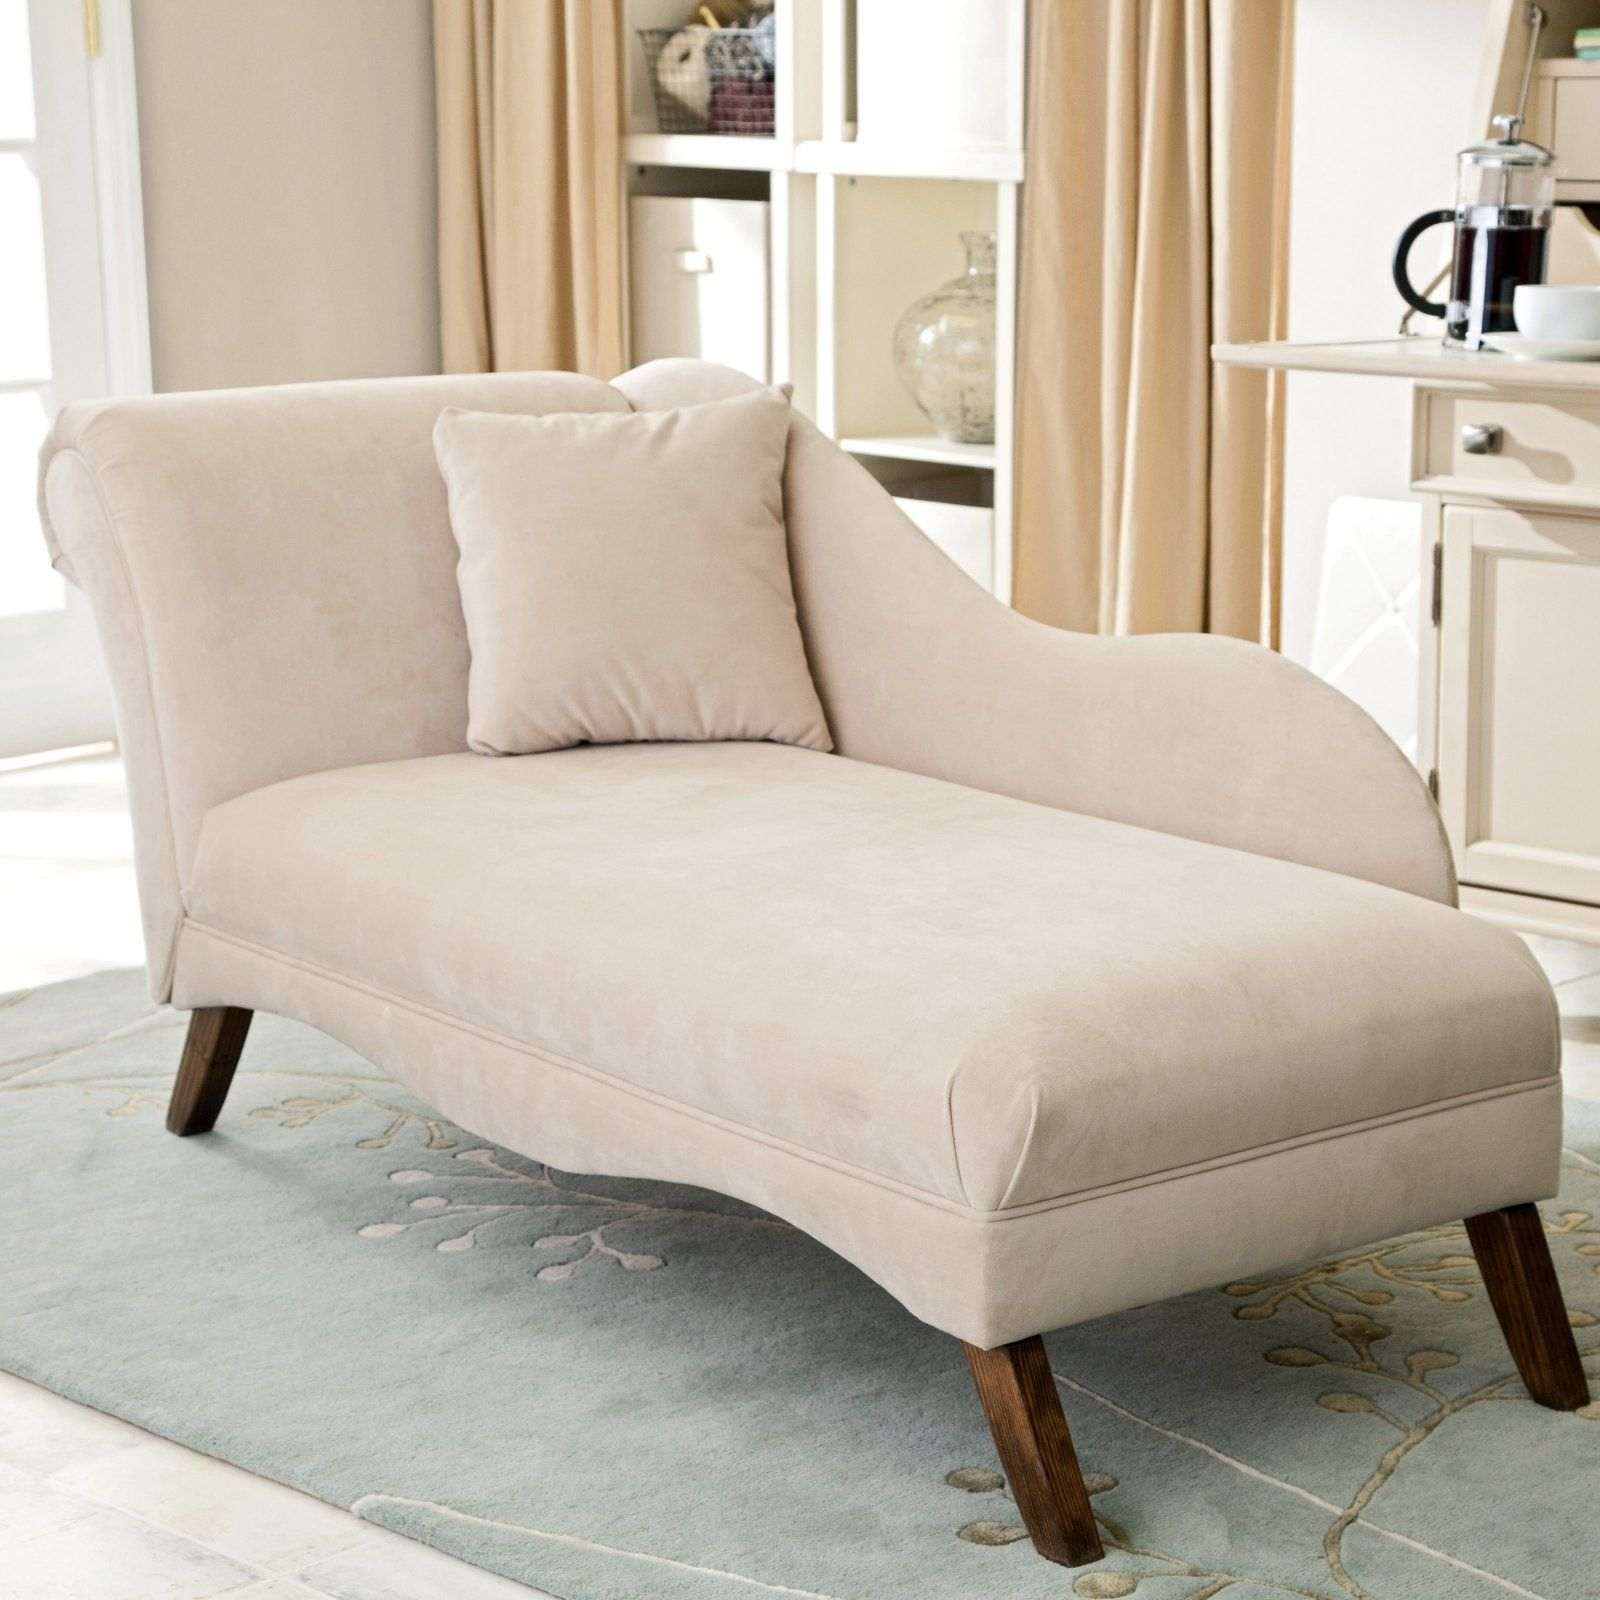 Divan Google Search Living Room Chaise Upholstered Chaise